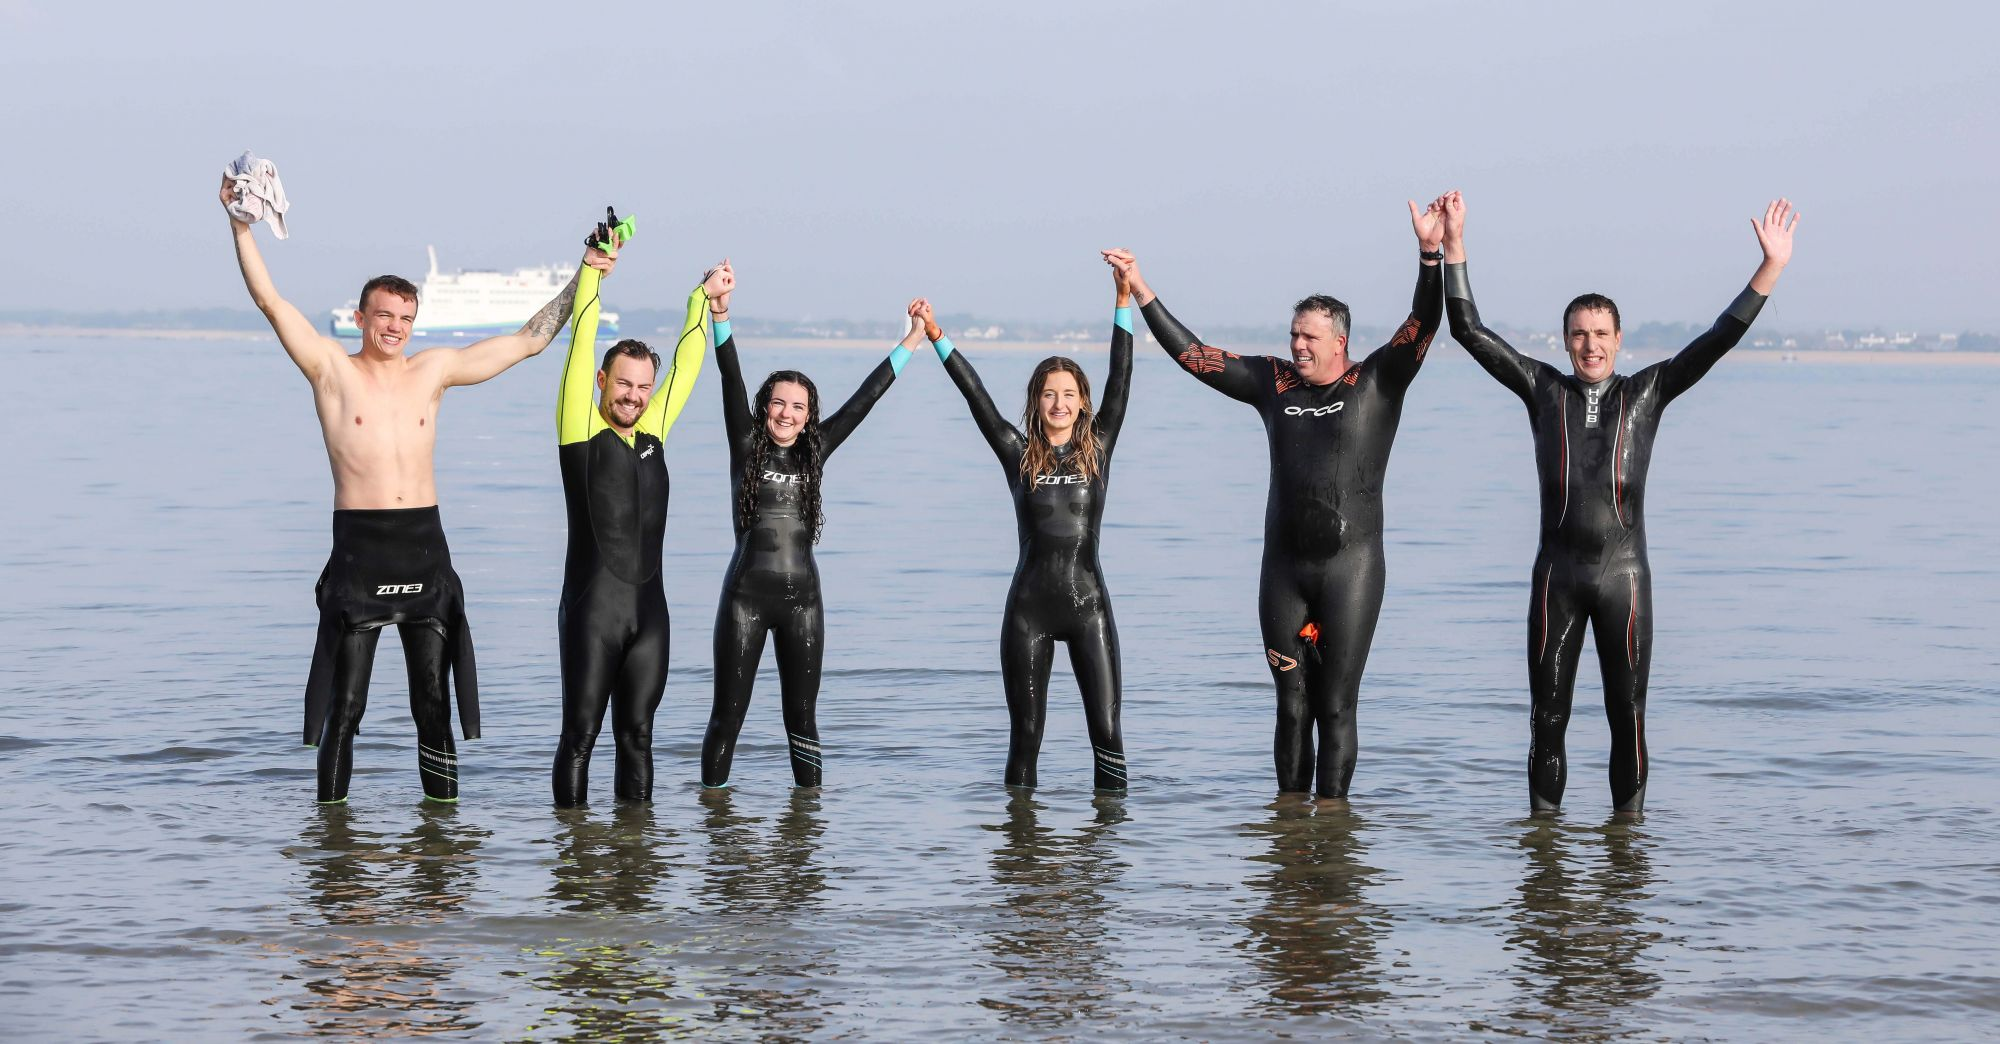 MADE IT! Employees of Trant Engineering took part in a charity swim across the Solent from Gosport to Ryde, Isle of Wight. Pictured are the victorious members of the team after successfully completing the crossing. From left, James Stead (Project Engineer), Terry Elstone (Consultant Commercial Manager), Jess Howe (Buyer), Louisa Davies (Quantity Surveyor), David Graham (Framework Manager) and James Henderson (Director – Process and Water).